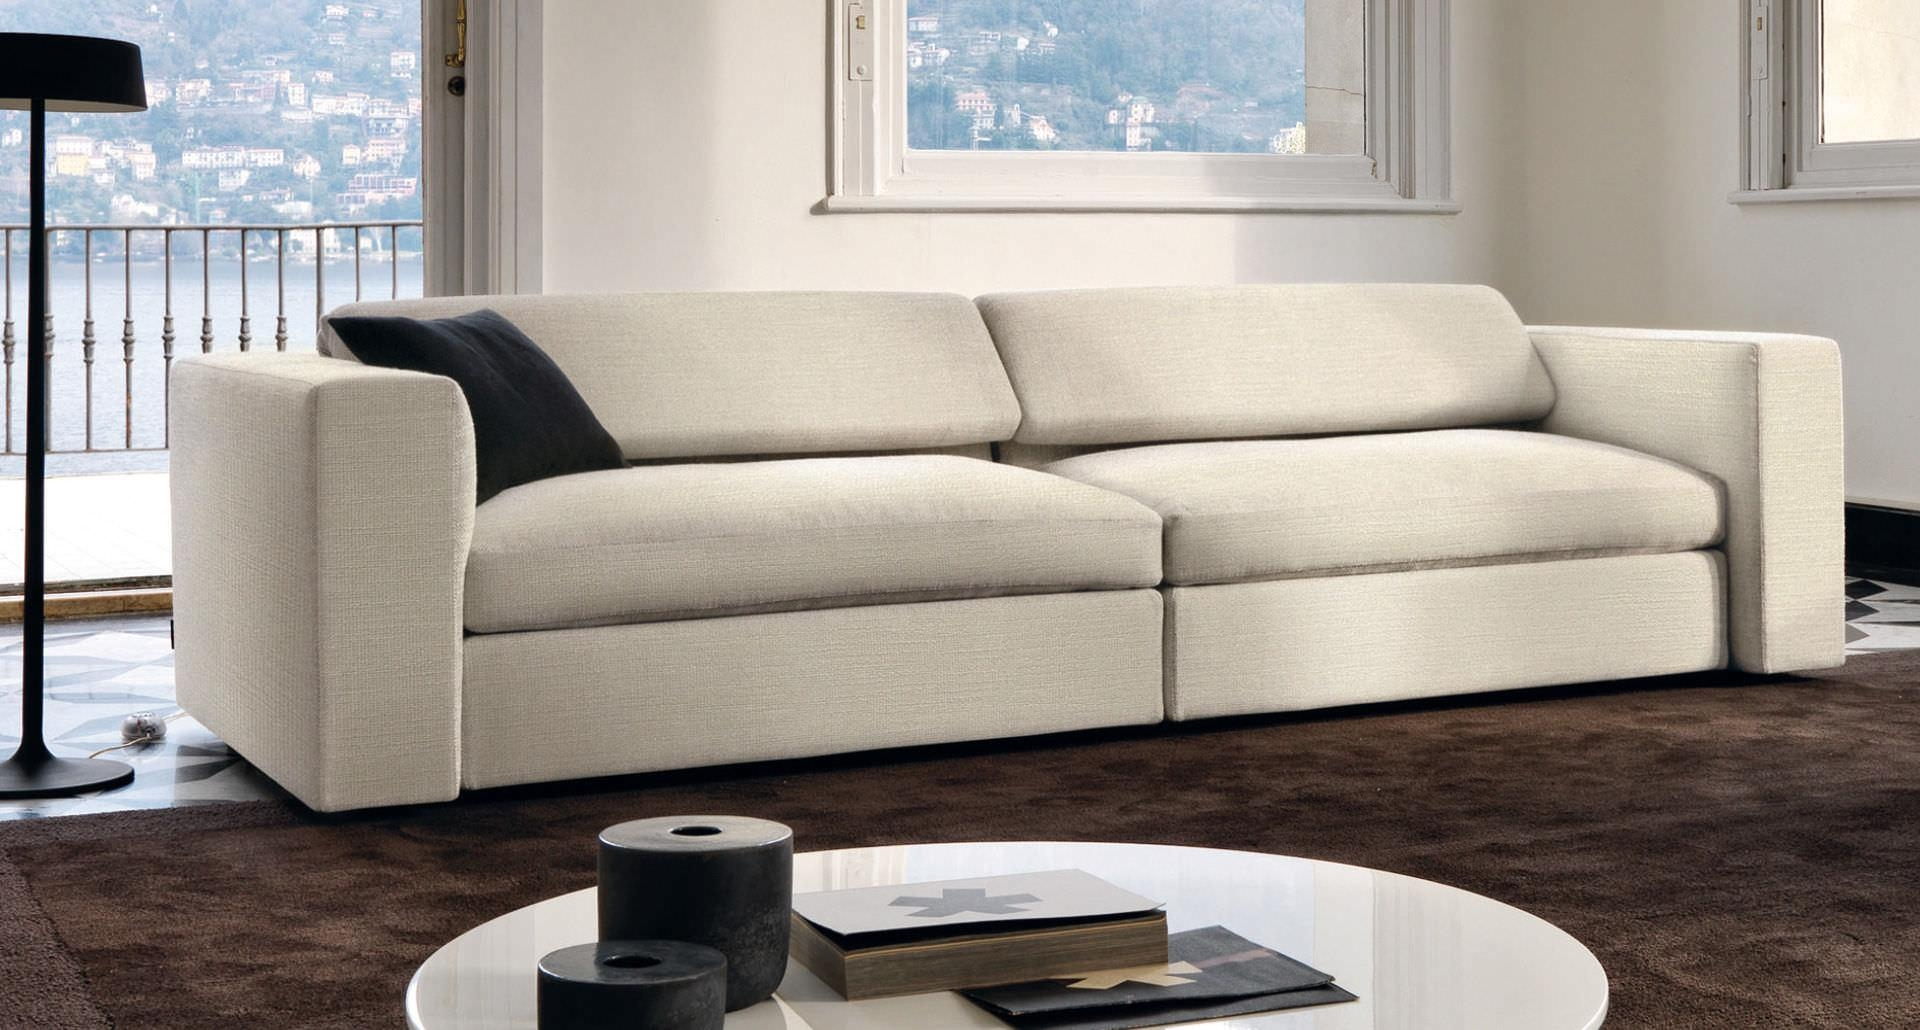 Sofas Center : Modern Loveseater Sofa Furnituremodern Sectional Throughout Italian Recliner Sofas (View 11 of 20)